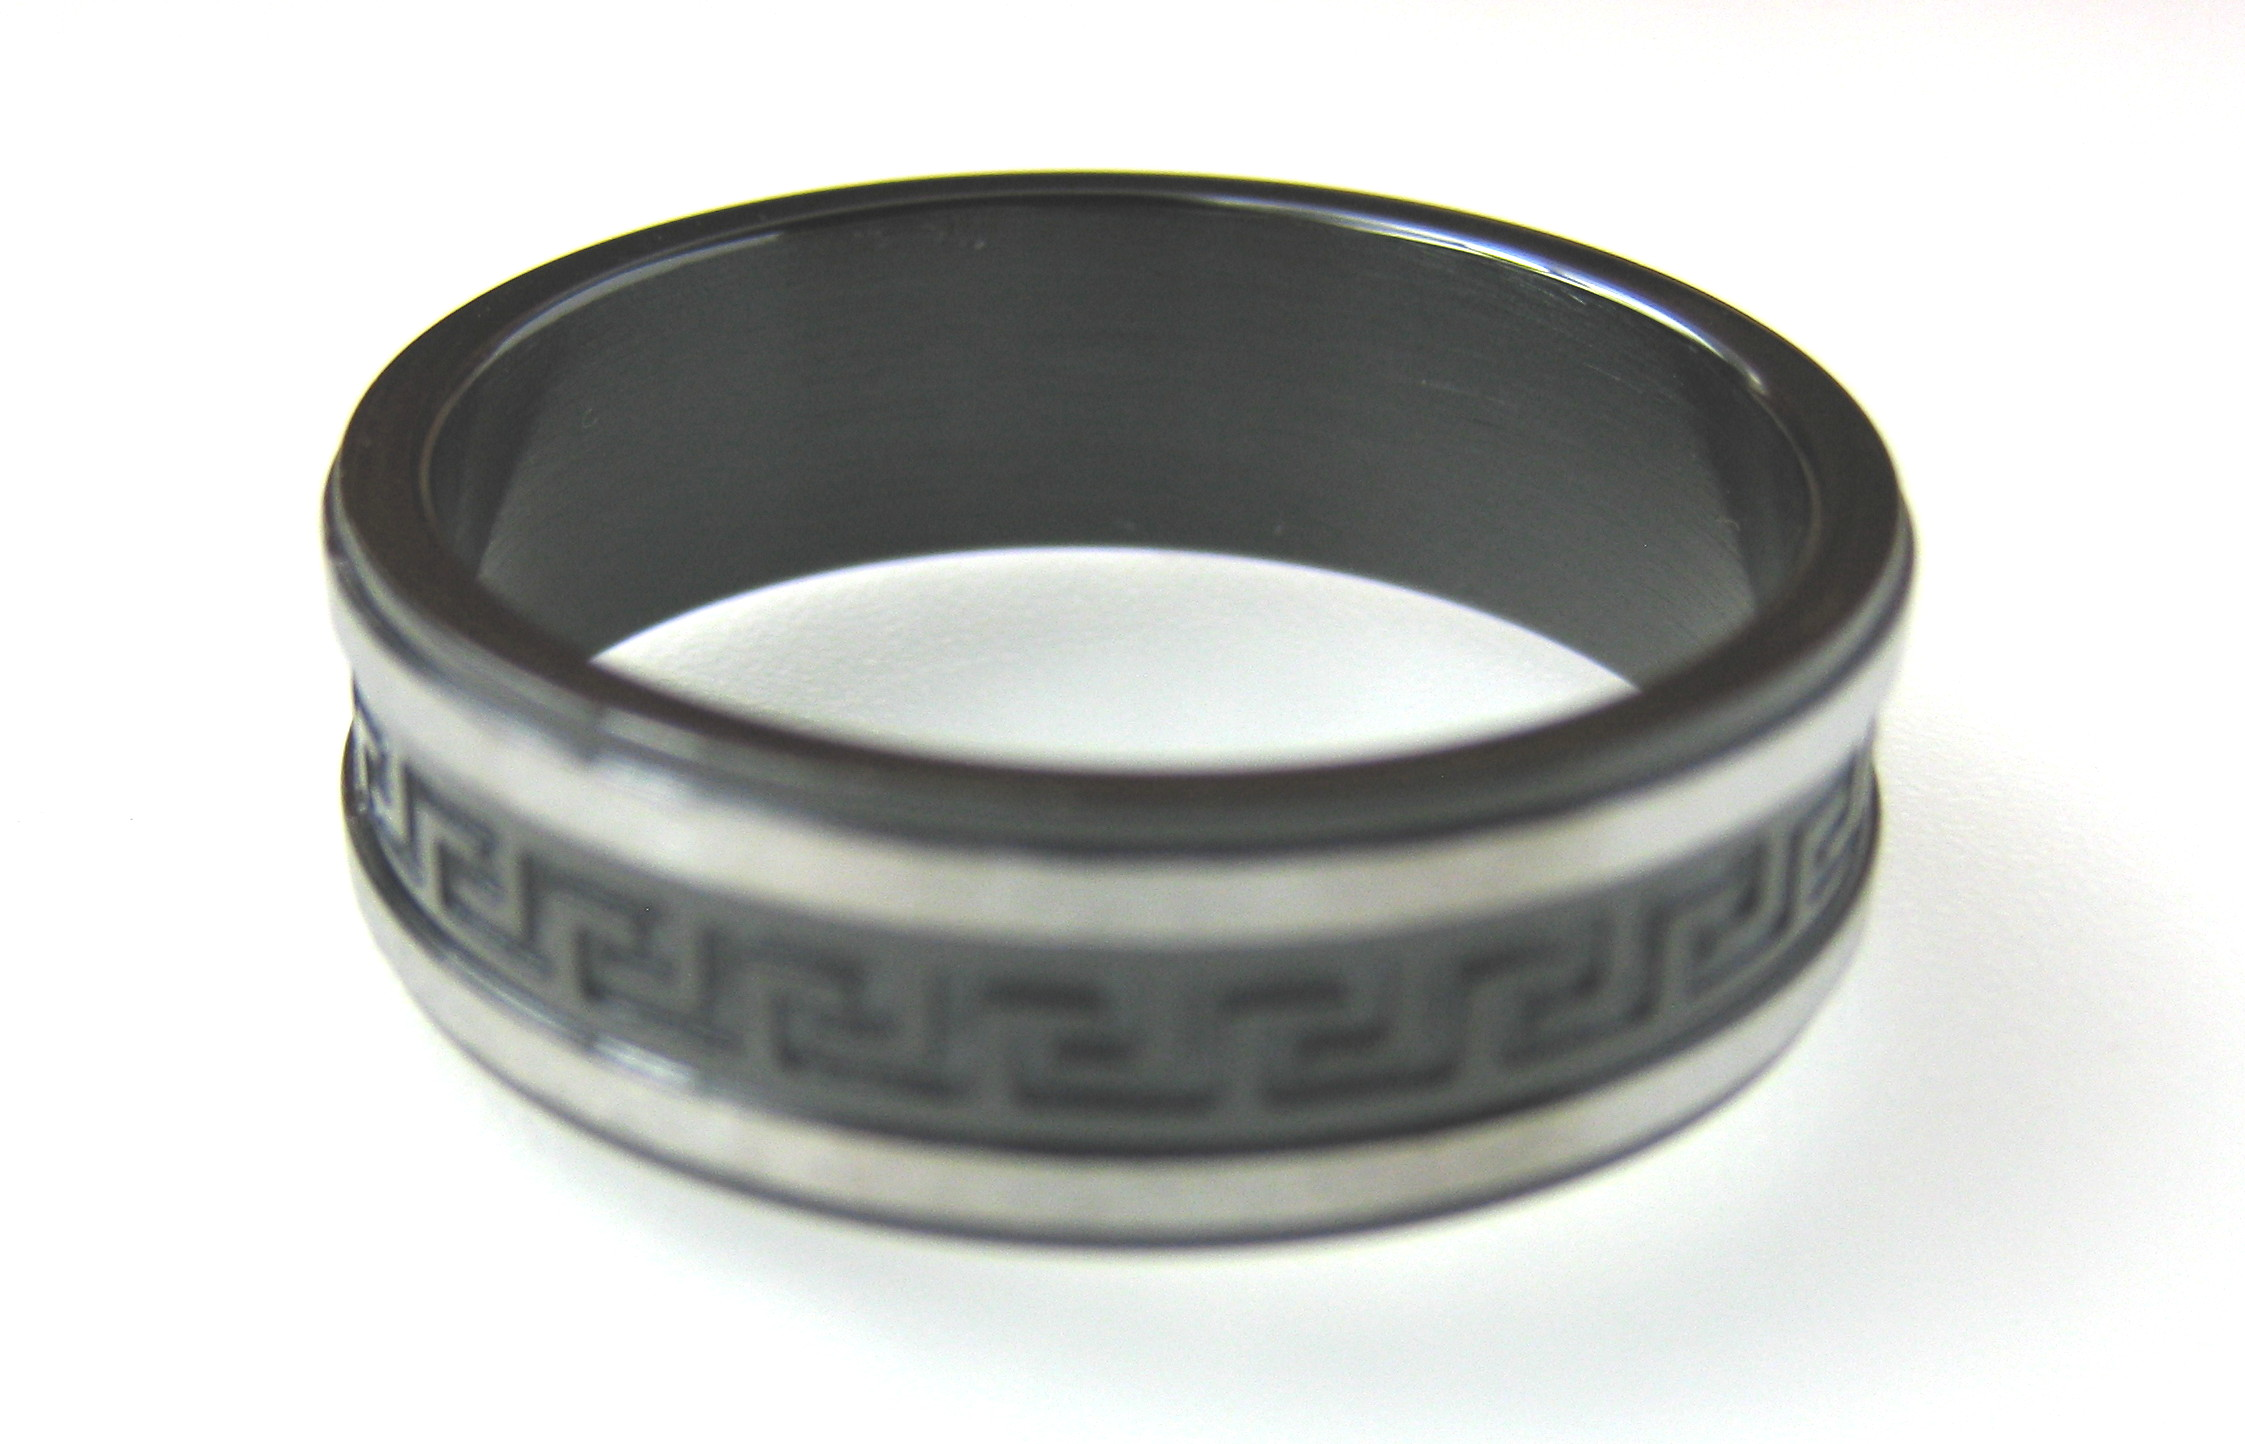 Black Stainless Steel Motif Mens Ring Band - various sizes - f-rg3